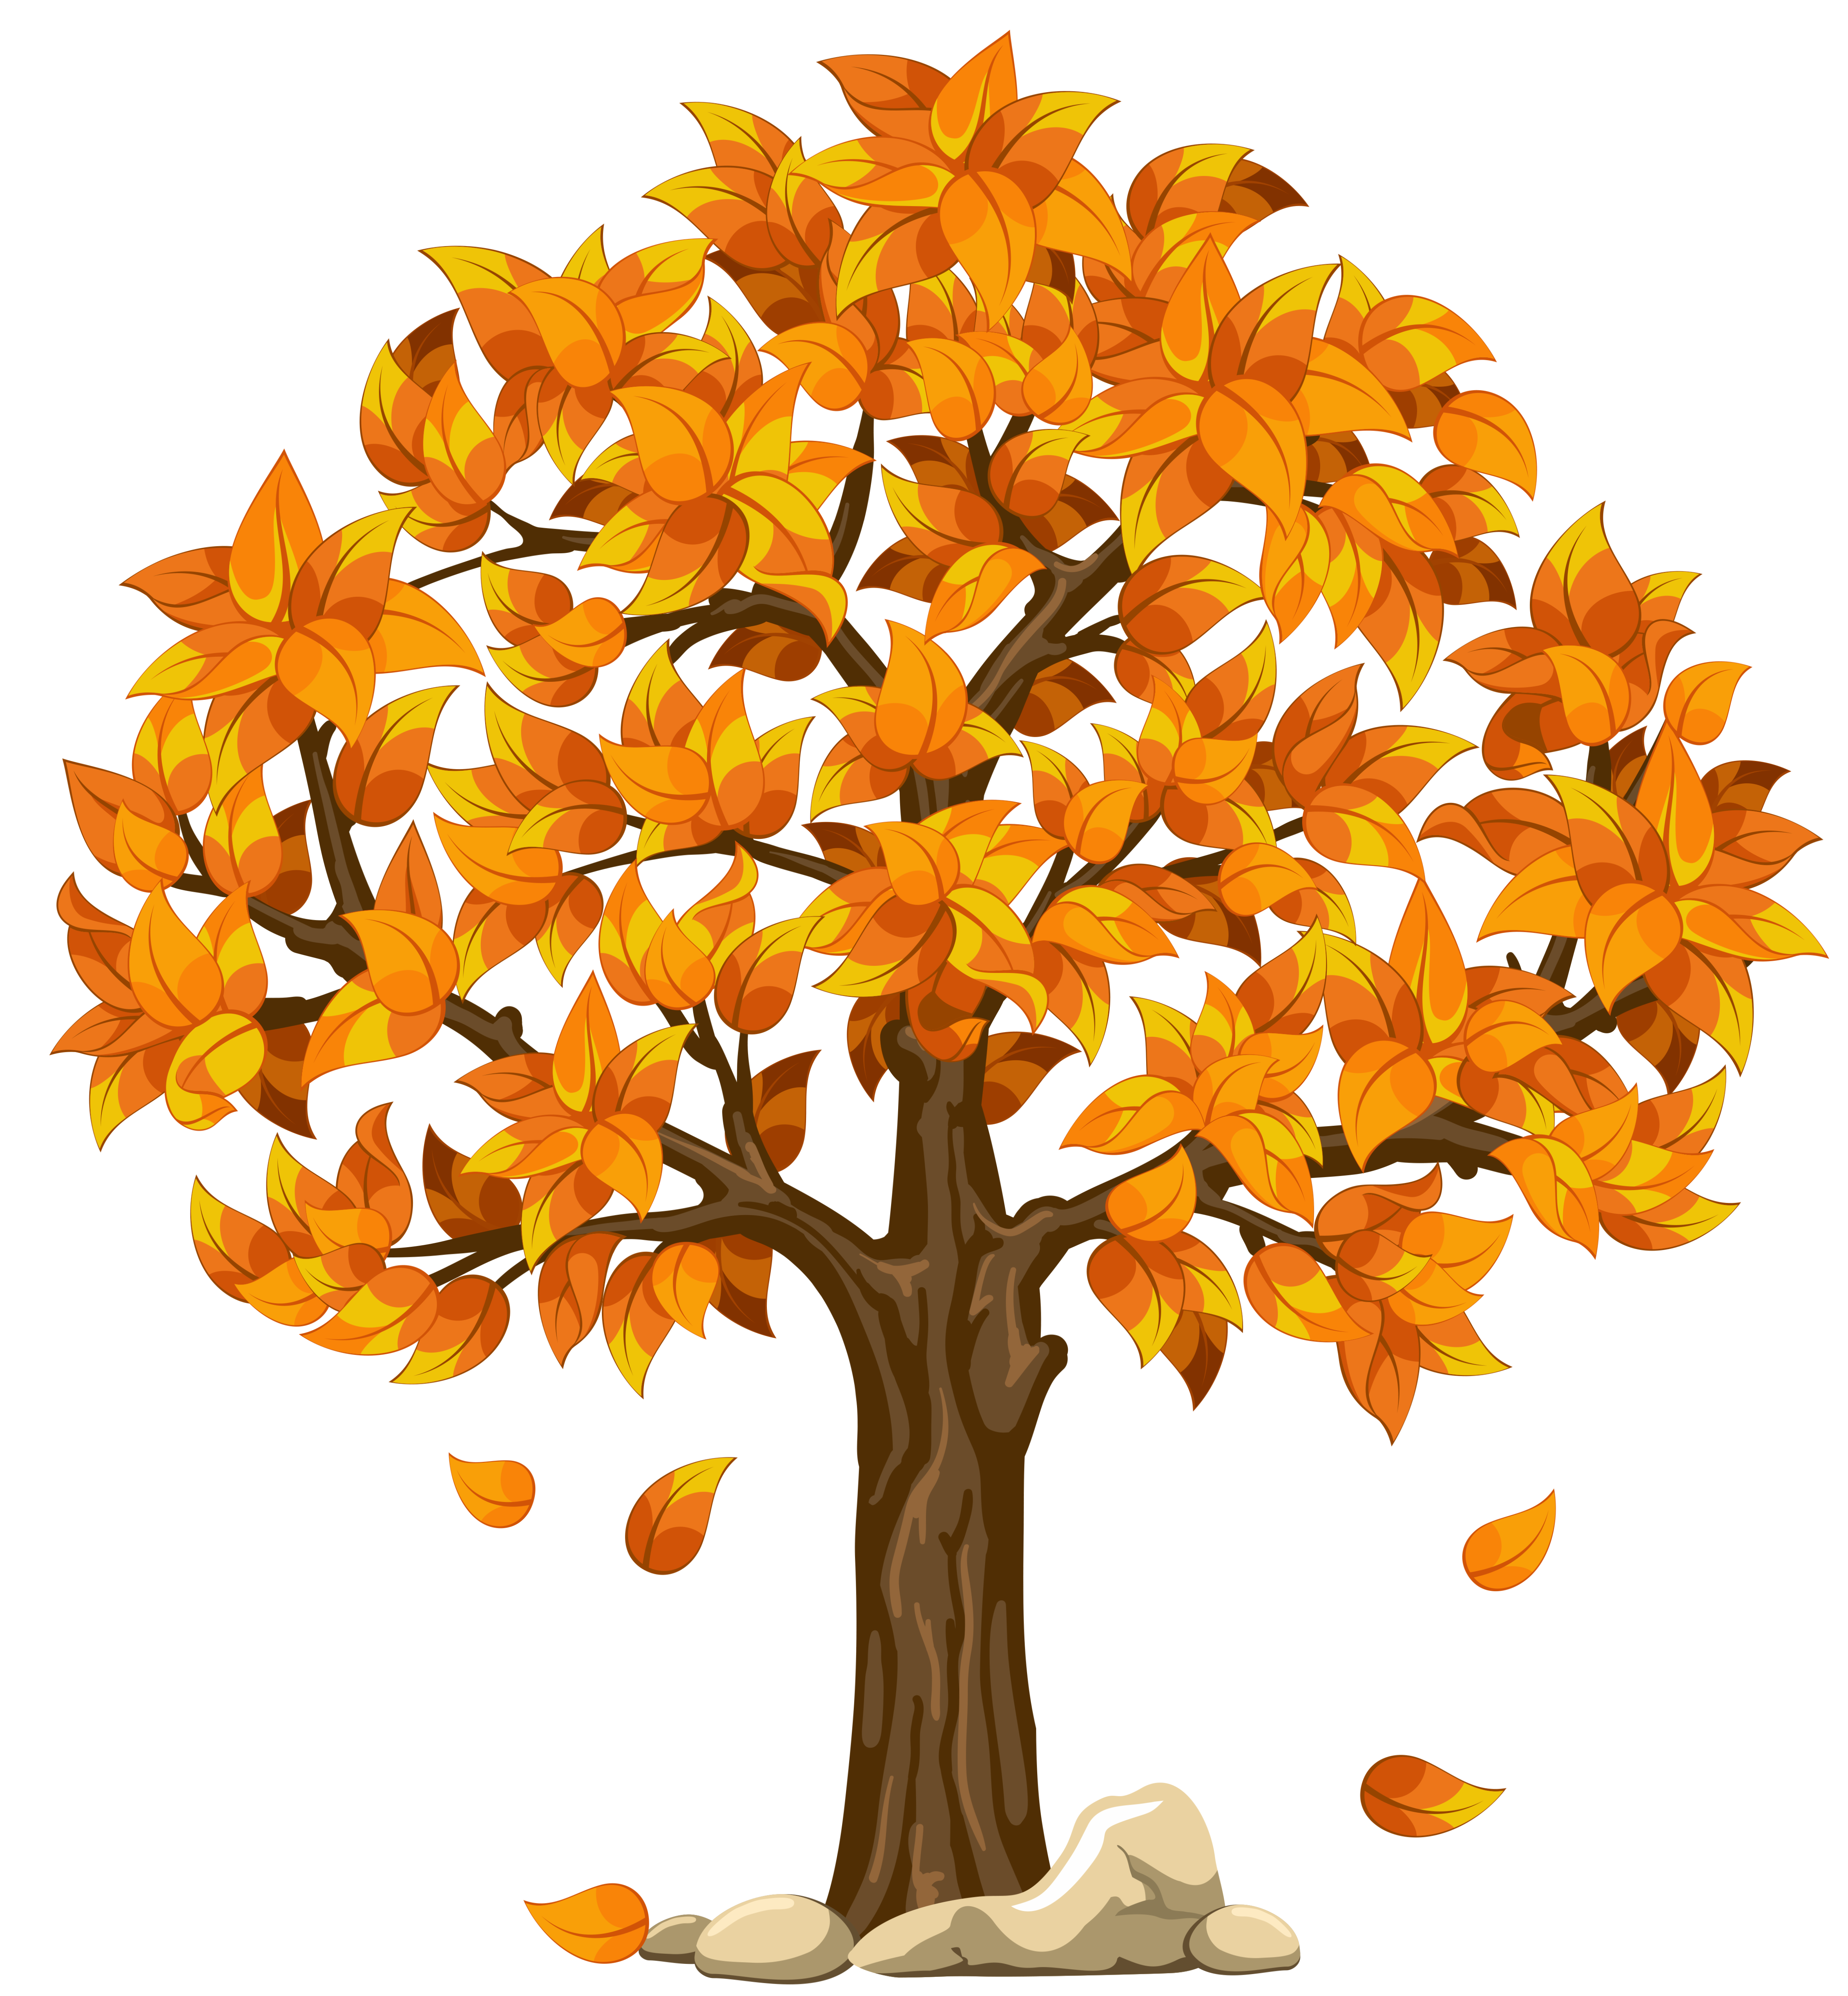 Fall clipart bare fall tree. Transparent orange png picture